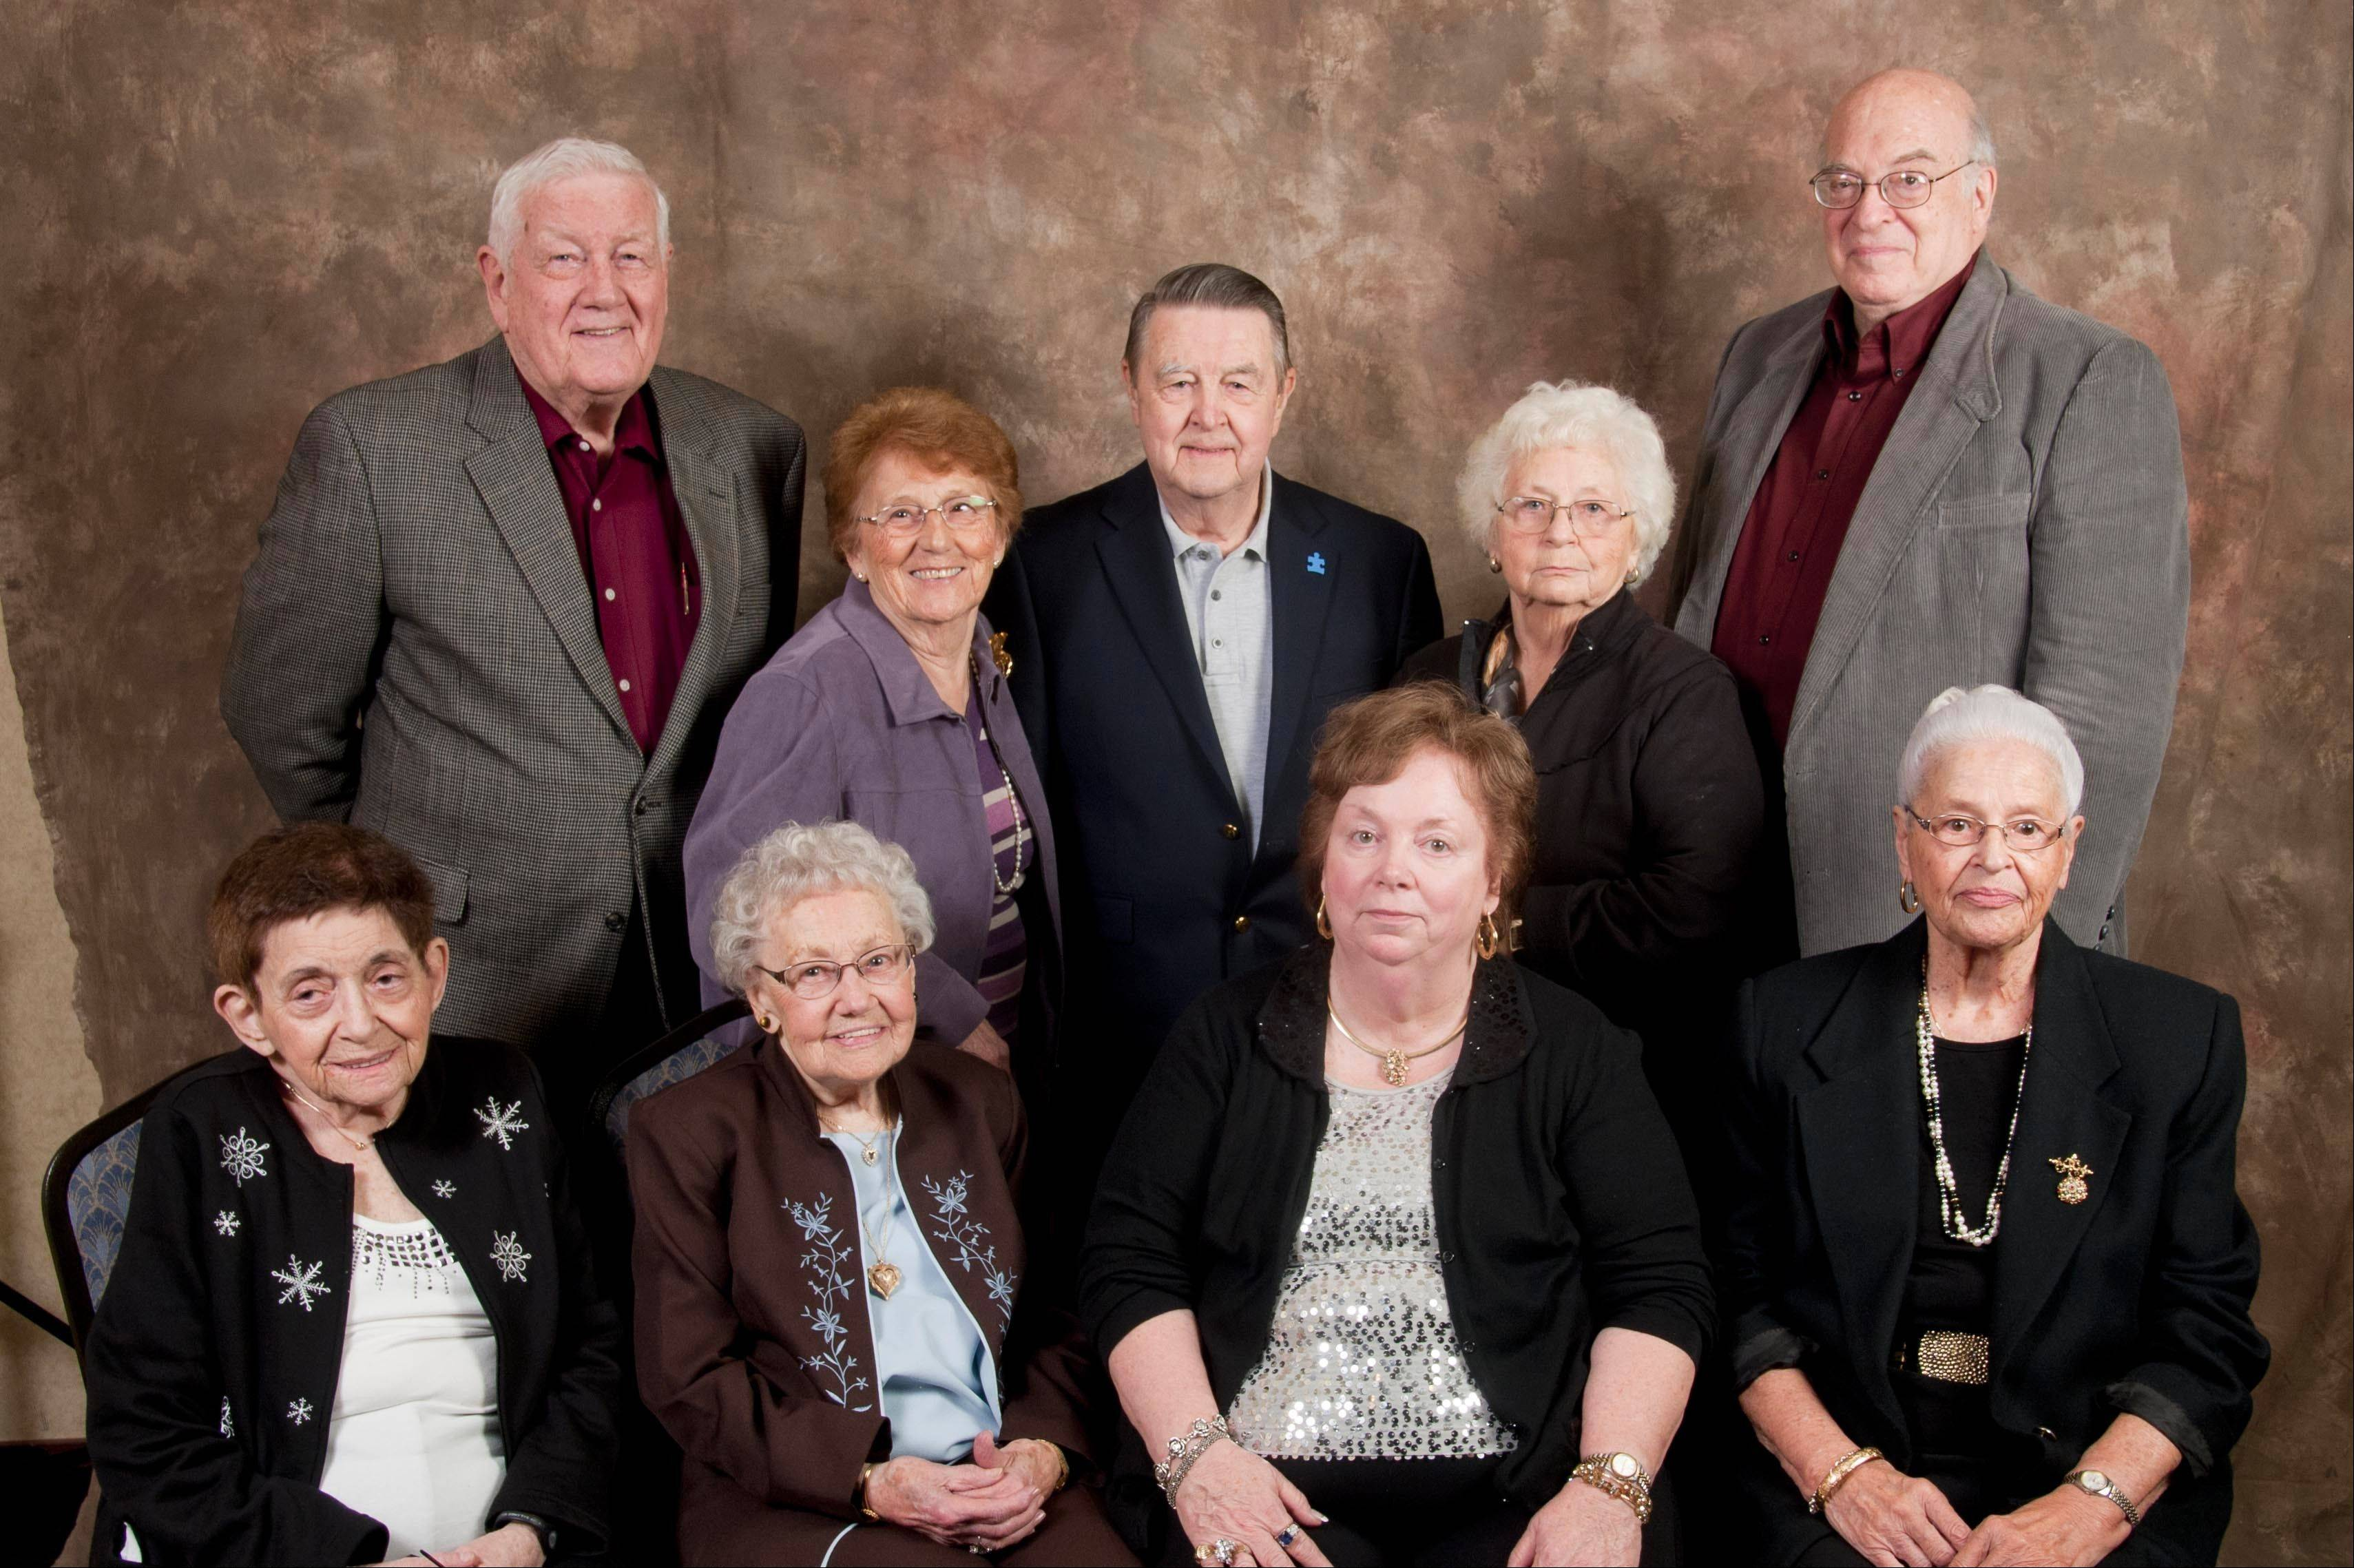 Buffalo Grove Park District Senior Advisory Council Board